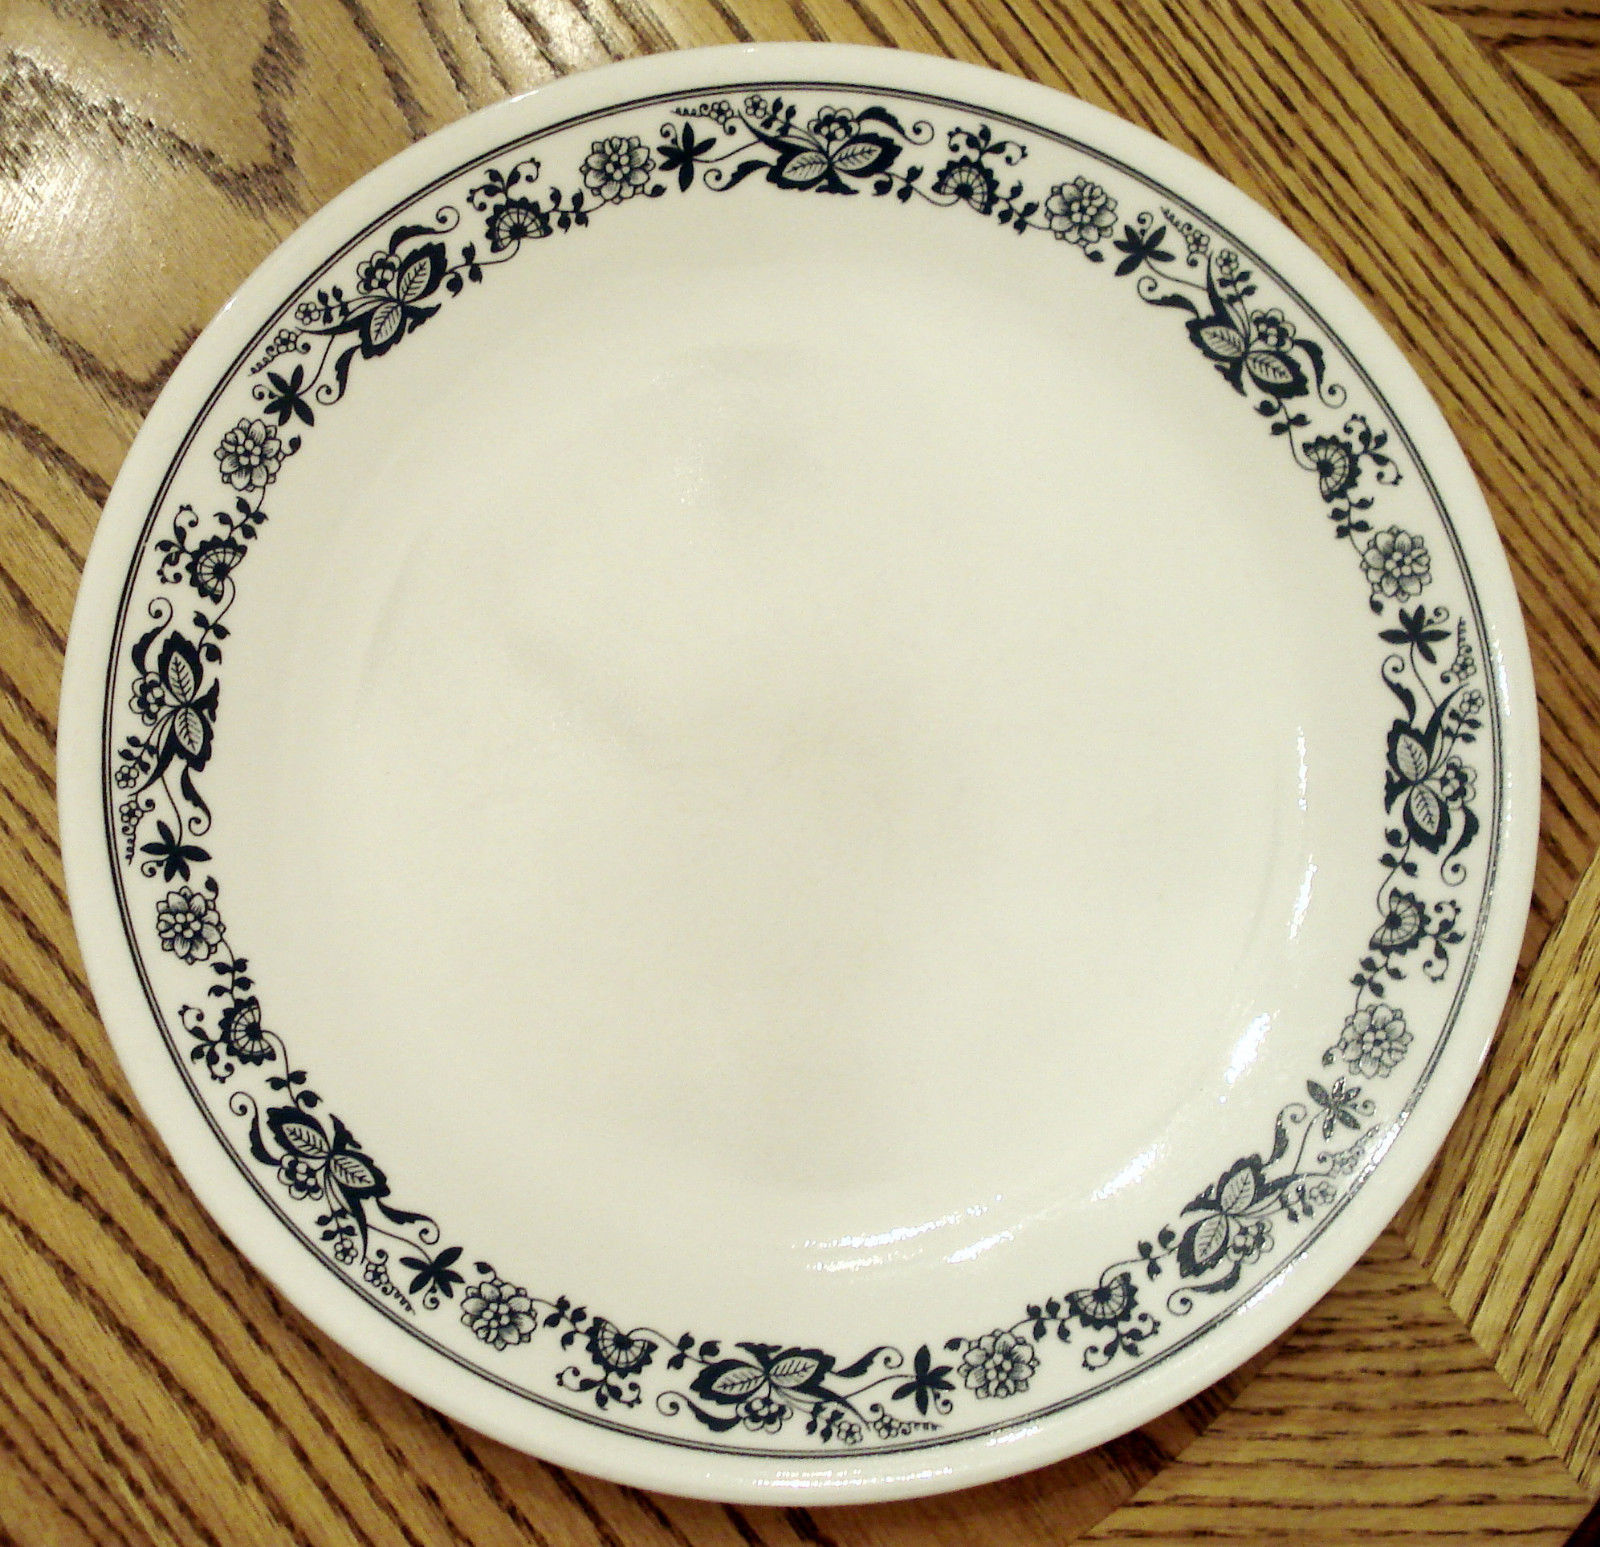 1979 Vintage CORNING WARE CORELLE Livingware OLD TOWN Blue Onion DINNER PLATE - $17.77  sc 1 st  Bonanza & Corelle Dinner Plate: 5 customer reviews and 46 listings